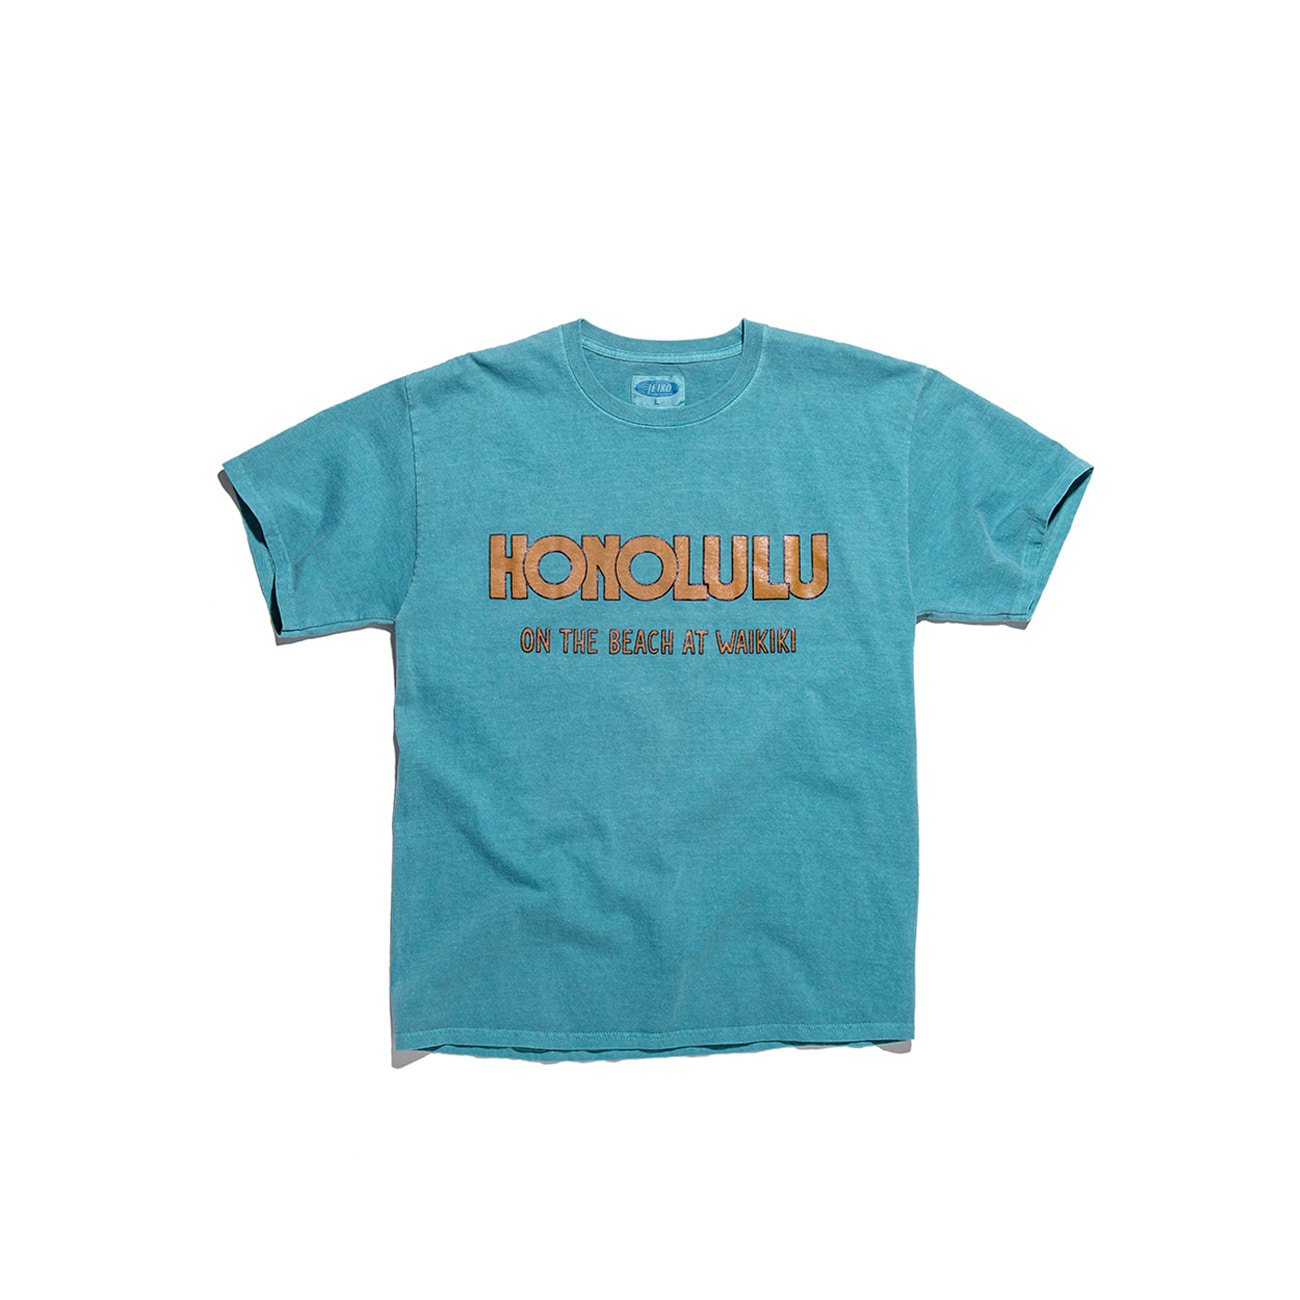 Original University T-shirt-HONOLULU